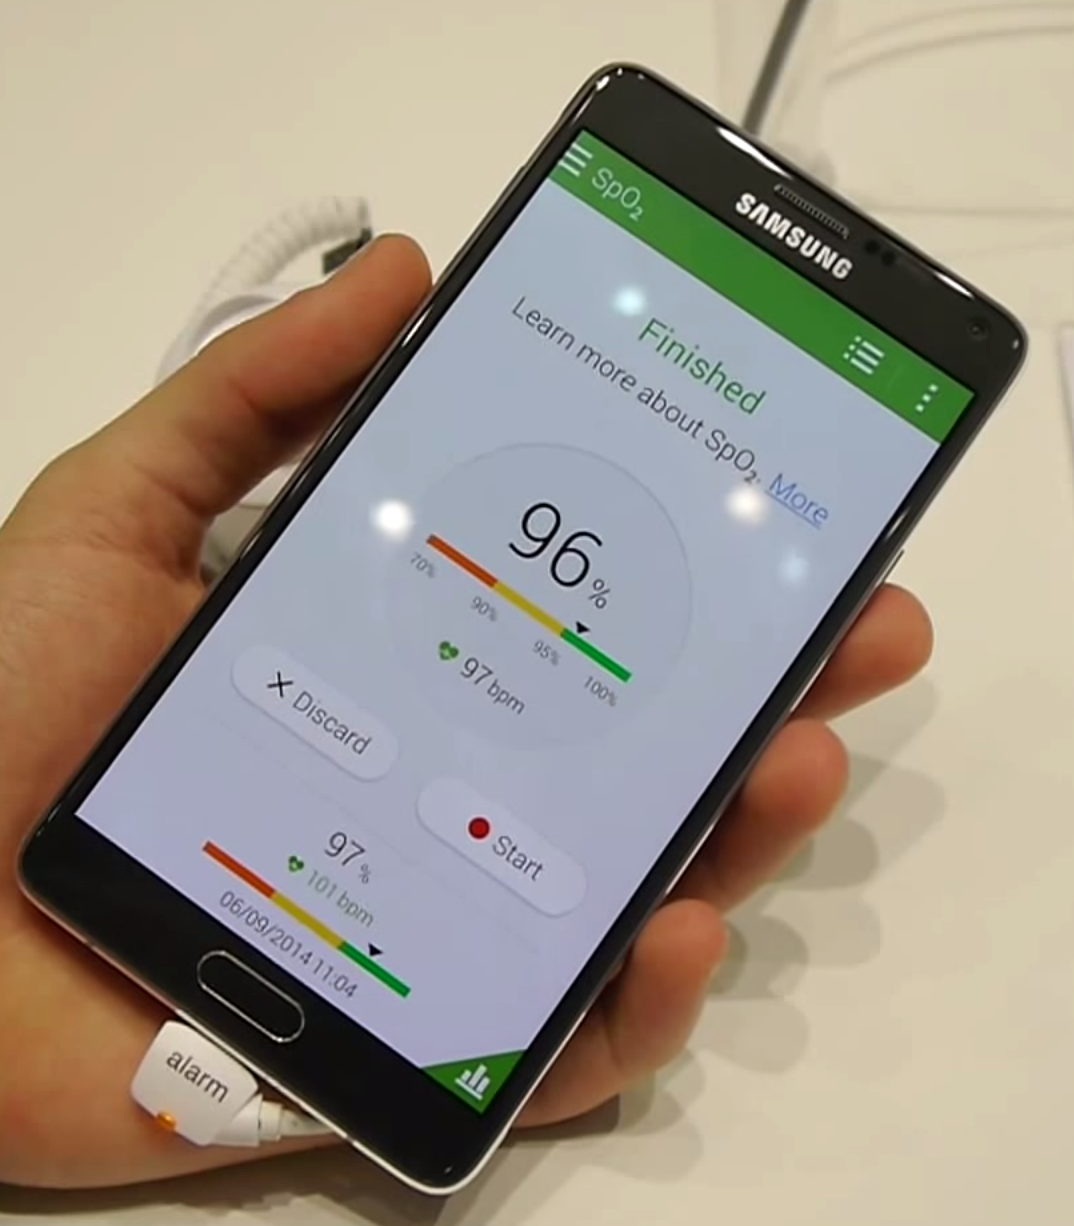 Galaxy Note 4 will measure your oxygen saturation, significant health implications